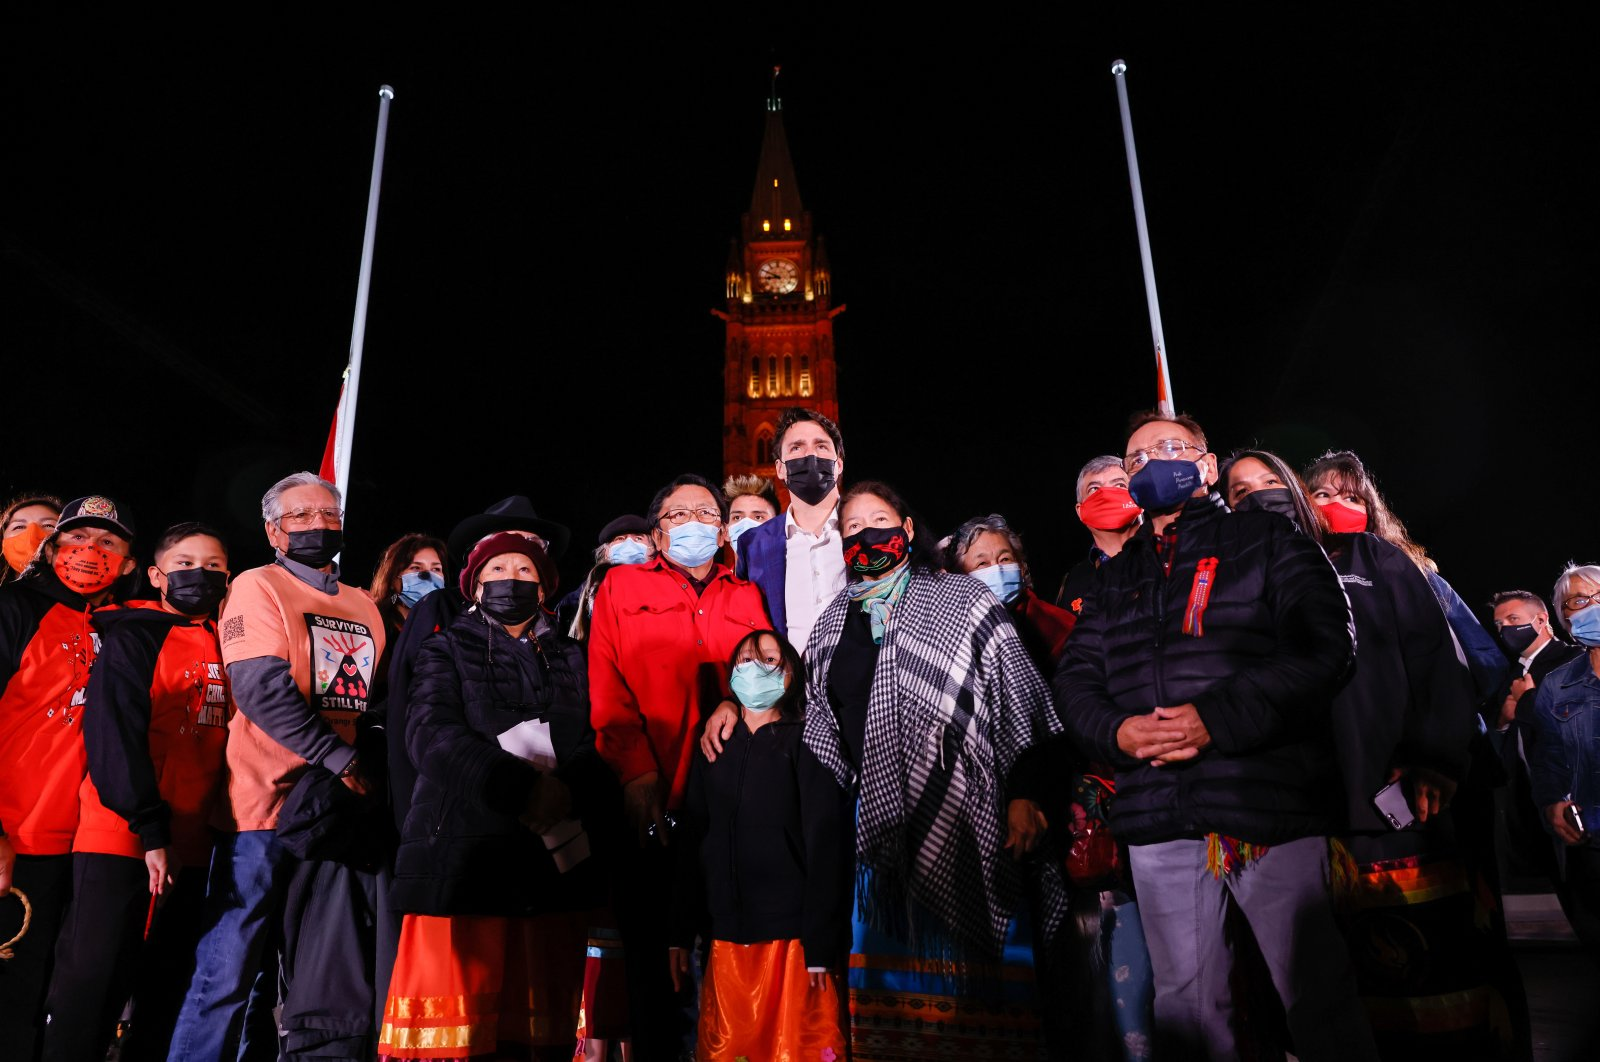 Canadian Prime Minister Justin Trudeau poses for a group photo with survivors and family members, on the eve of Canada's first National Day for Truth and Reconciliation, honoring the lost children and survivors of Indigenous residential schools, their families and communities on Parliament Hill in Ottawa, Ontario, Canada Sept. 29, 2021. (Reuters Photo)